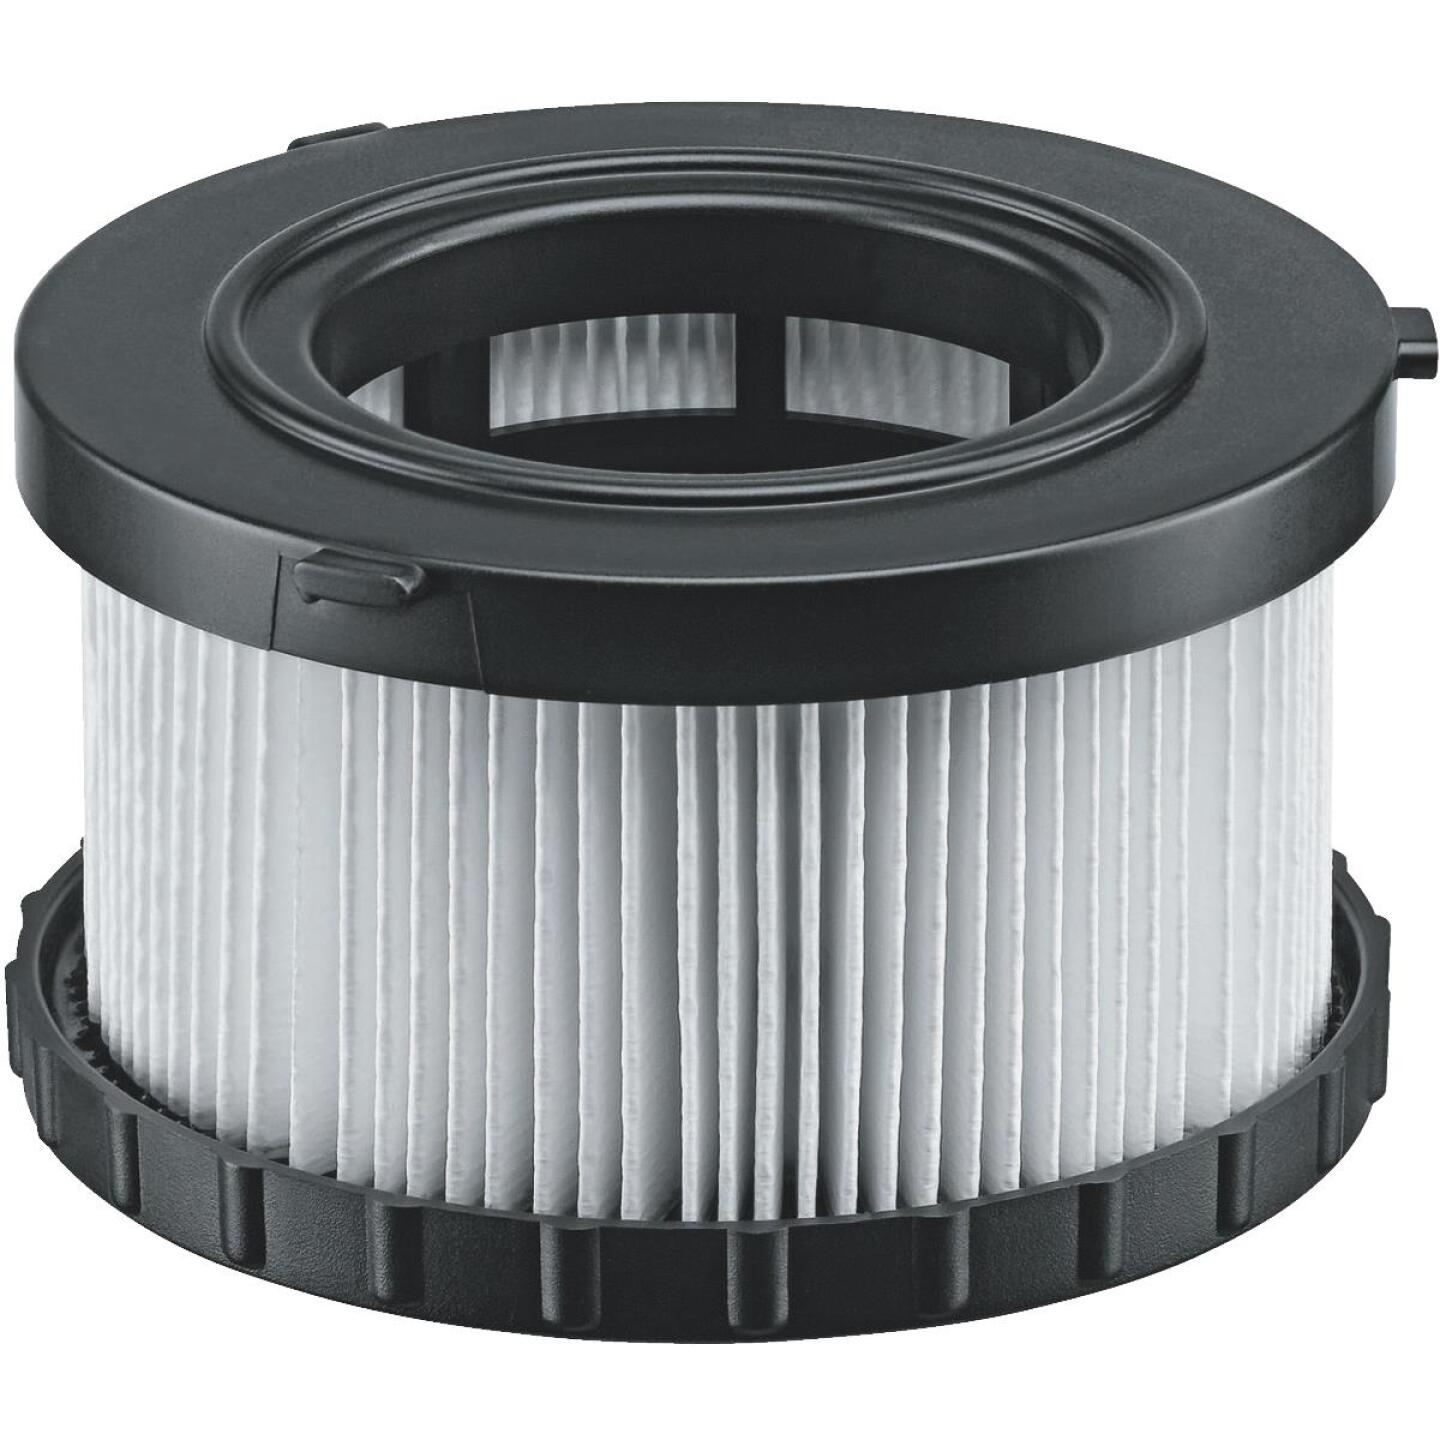 DeWalt Cartridge HEPA DC515K Vacuum Filter Image 1